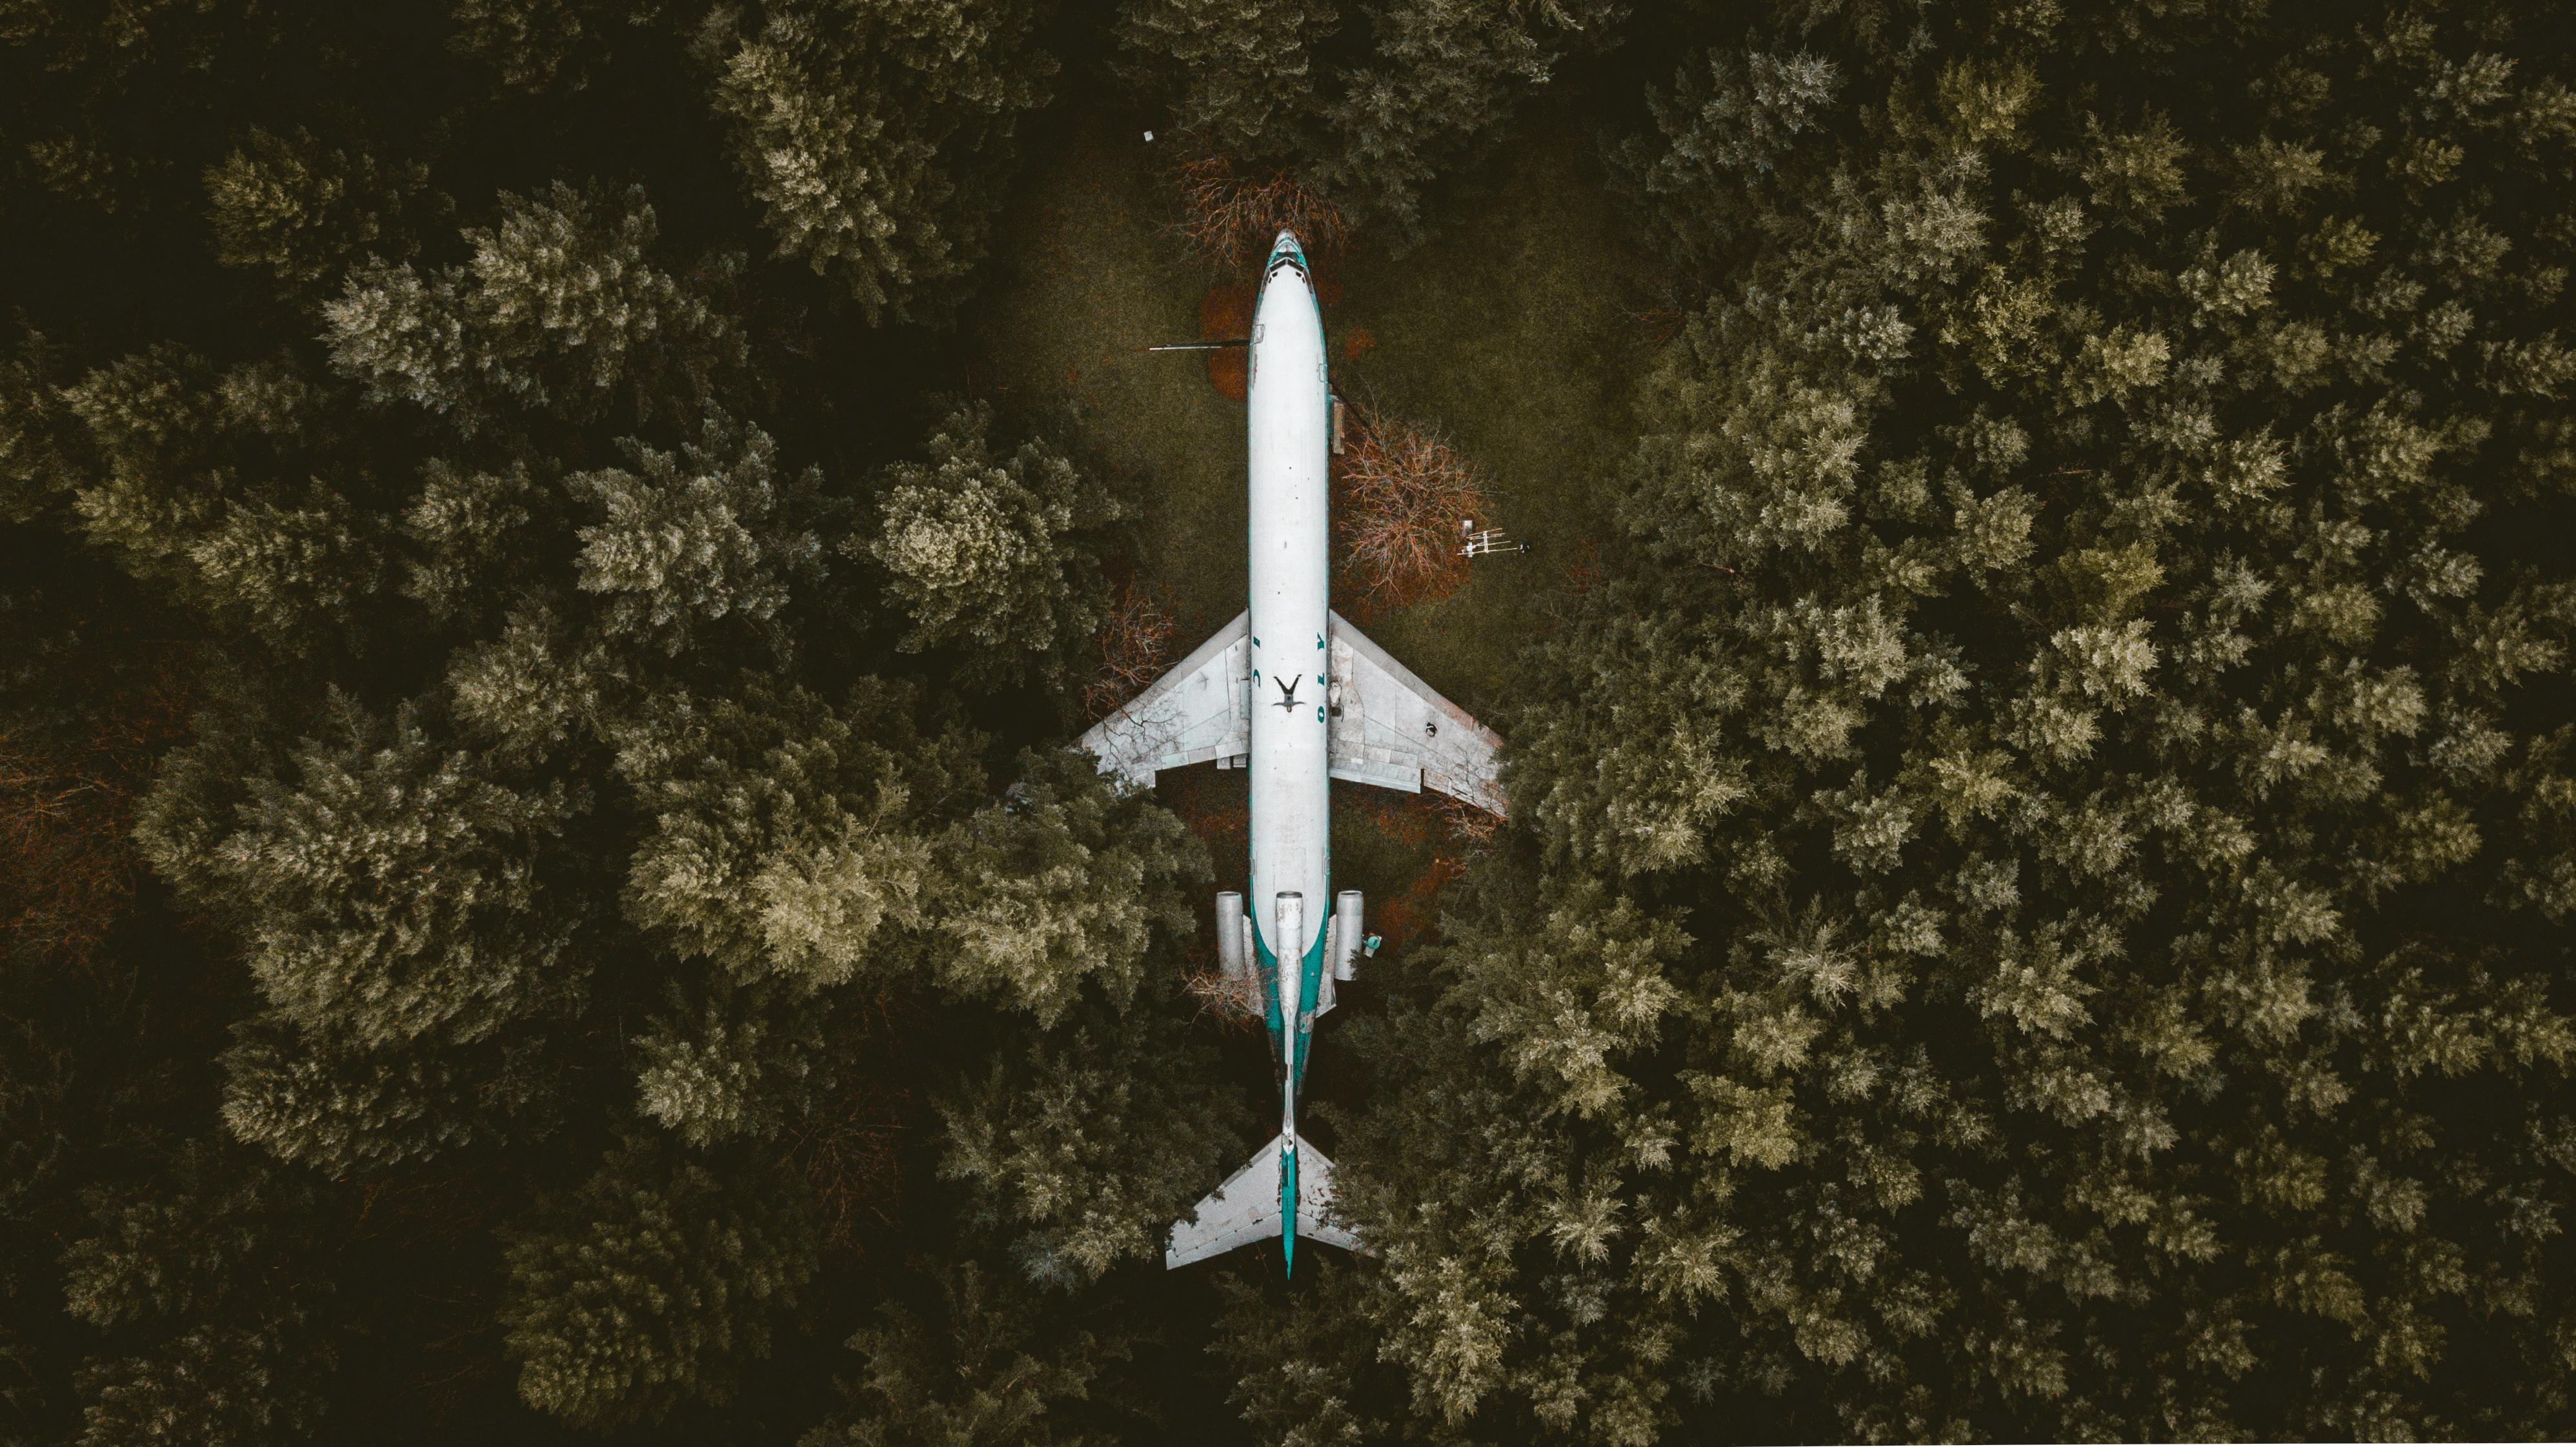 aerial photography of an airplane surrounded with trees